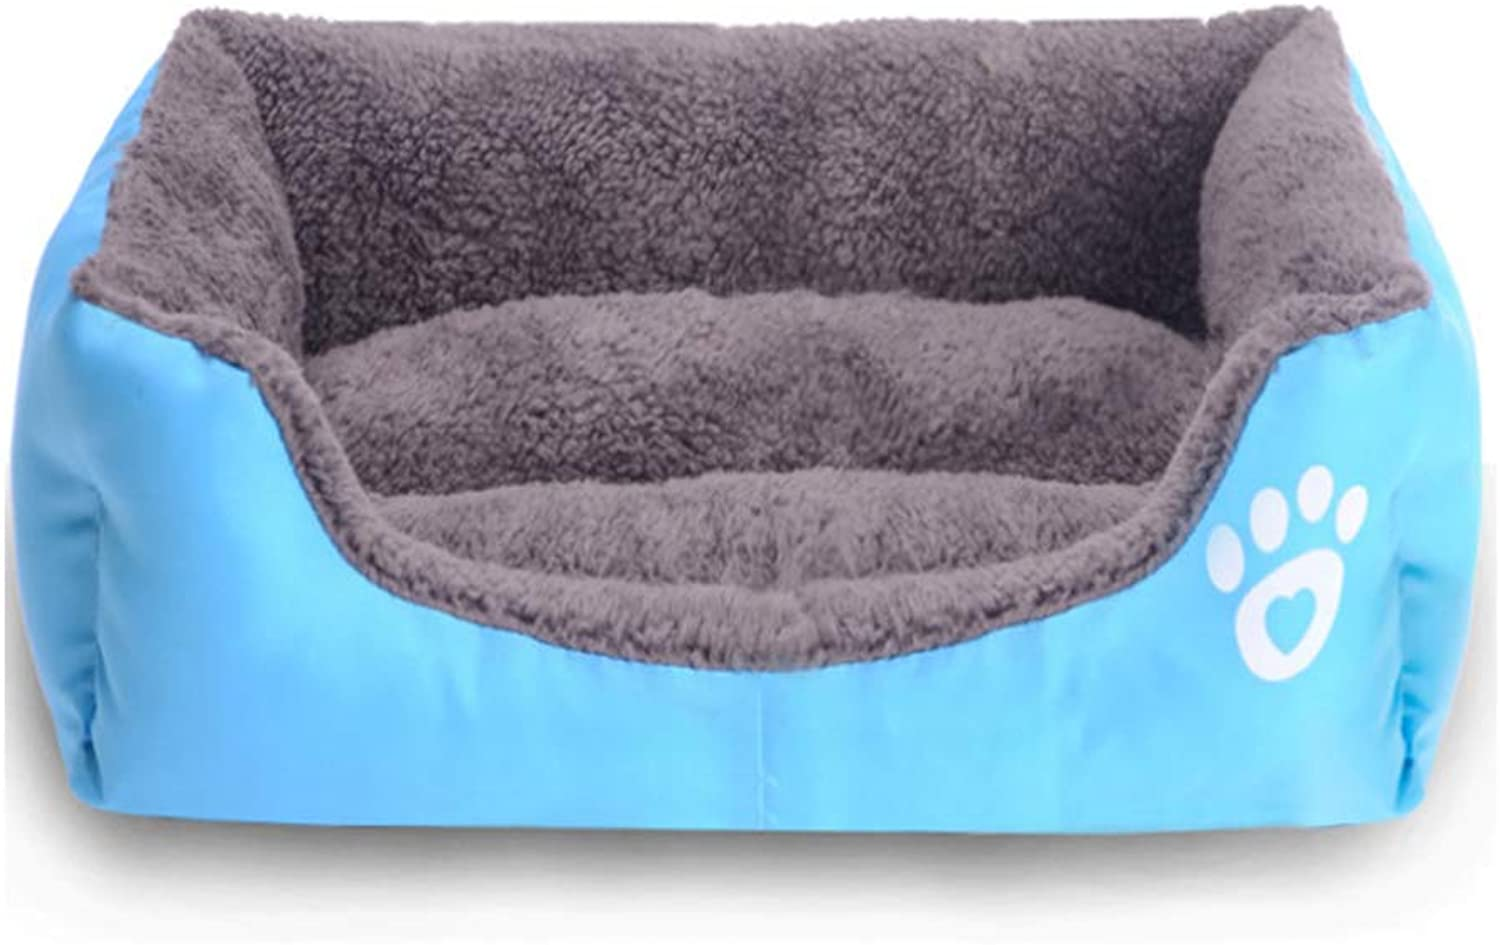 Dog Kennel Pet House Fall Winter Warm Pet Waterloo Teddy golden Retriever Dogs Bed Cushion Pussy Litter Pet Supplies Teddy Sofa Pet Bed Pet Waterloo (color   bluee, Size   M)